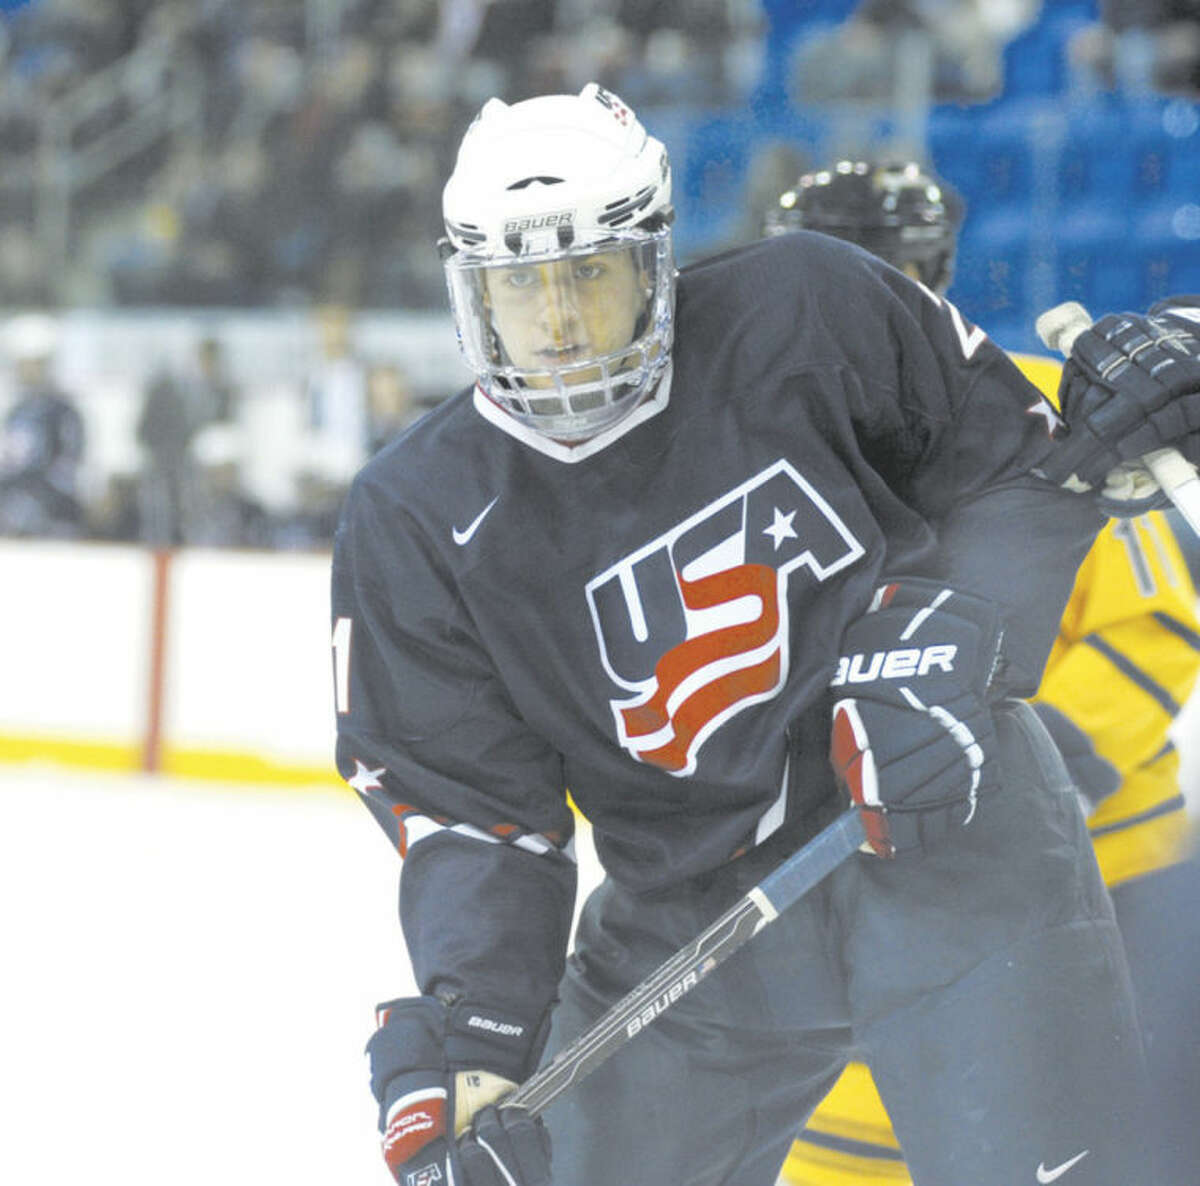 File photo by John Nash Stamford's Ryan Haggerty, seen here playing against Quinnipiac while suiting up for the Team USA?U-18 Developmental team, is now heading to the college ranks for real -- at RPI.